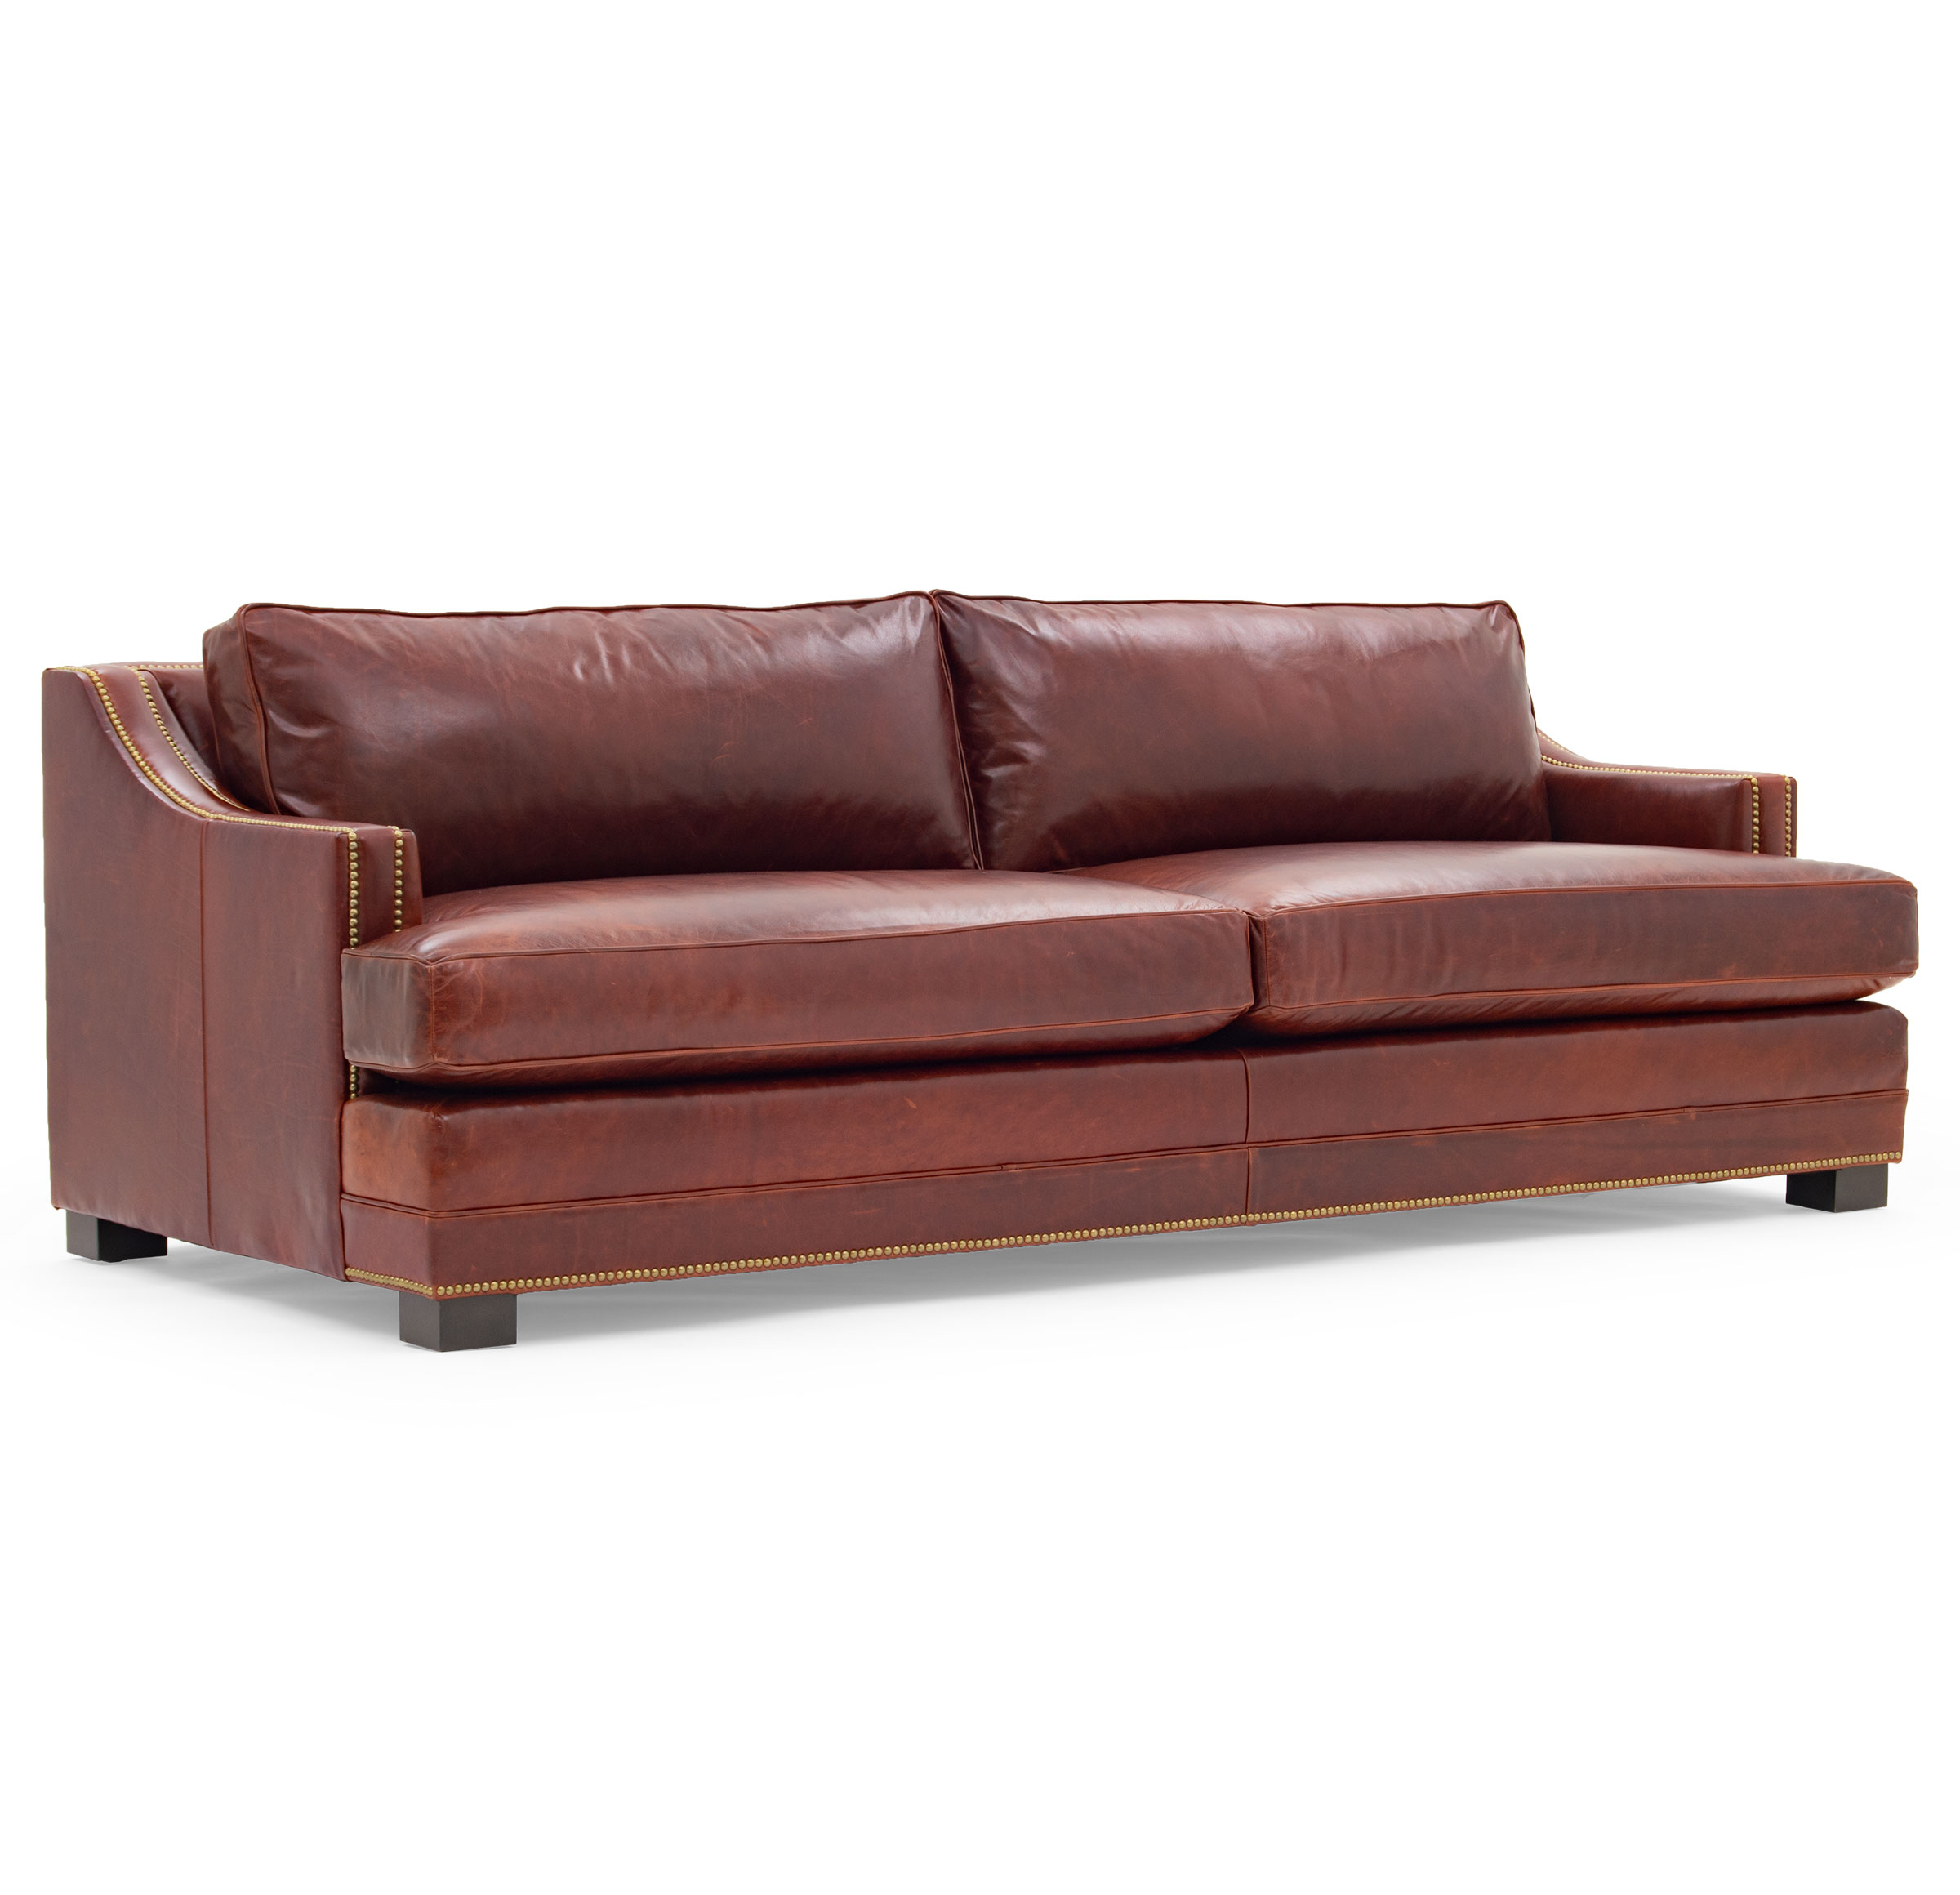 KEATON SLOPE ARM LEATHER SOFA STUDIO DEPTH WITH NAILHEAD, MONT BLANC - CHIANTI, hi-res